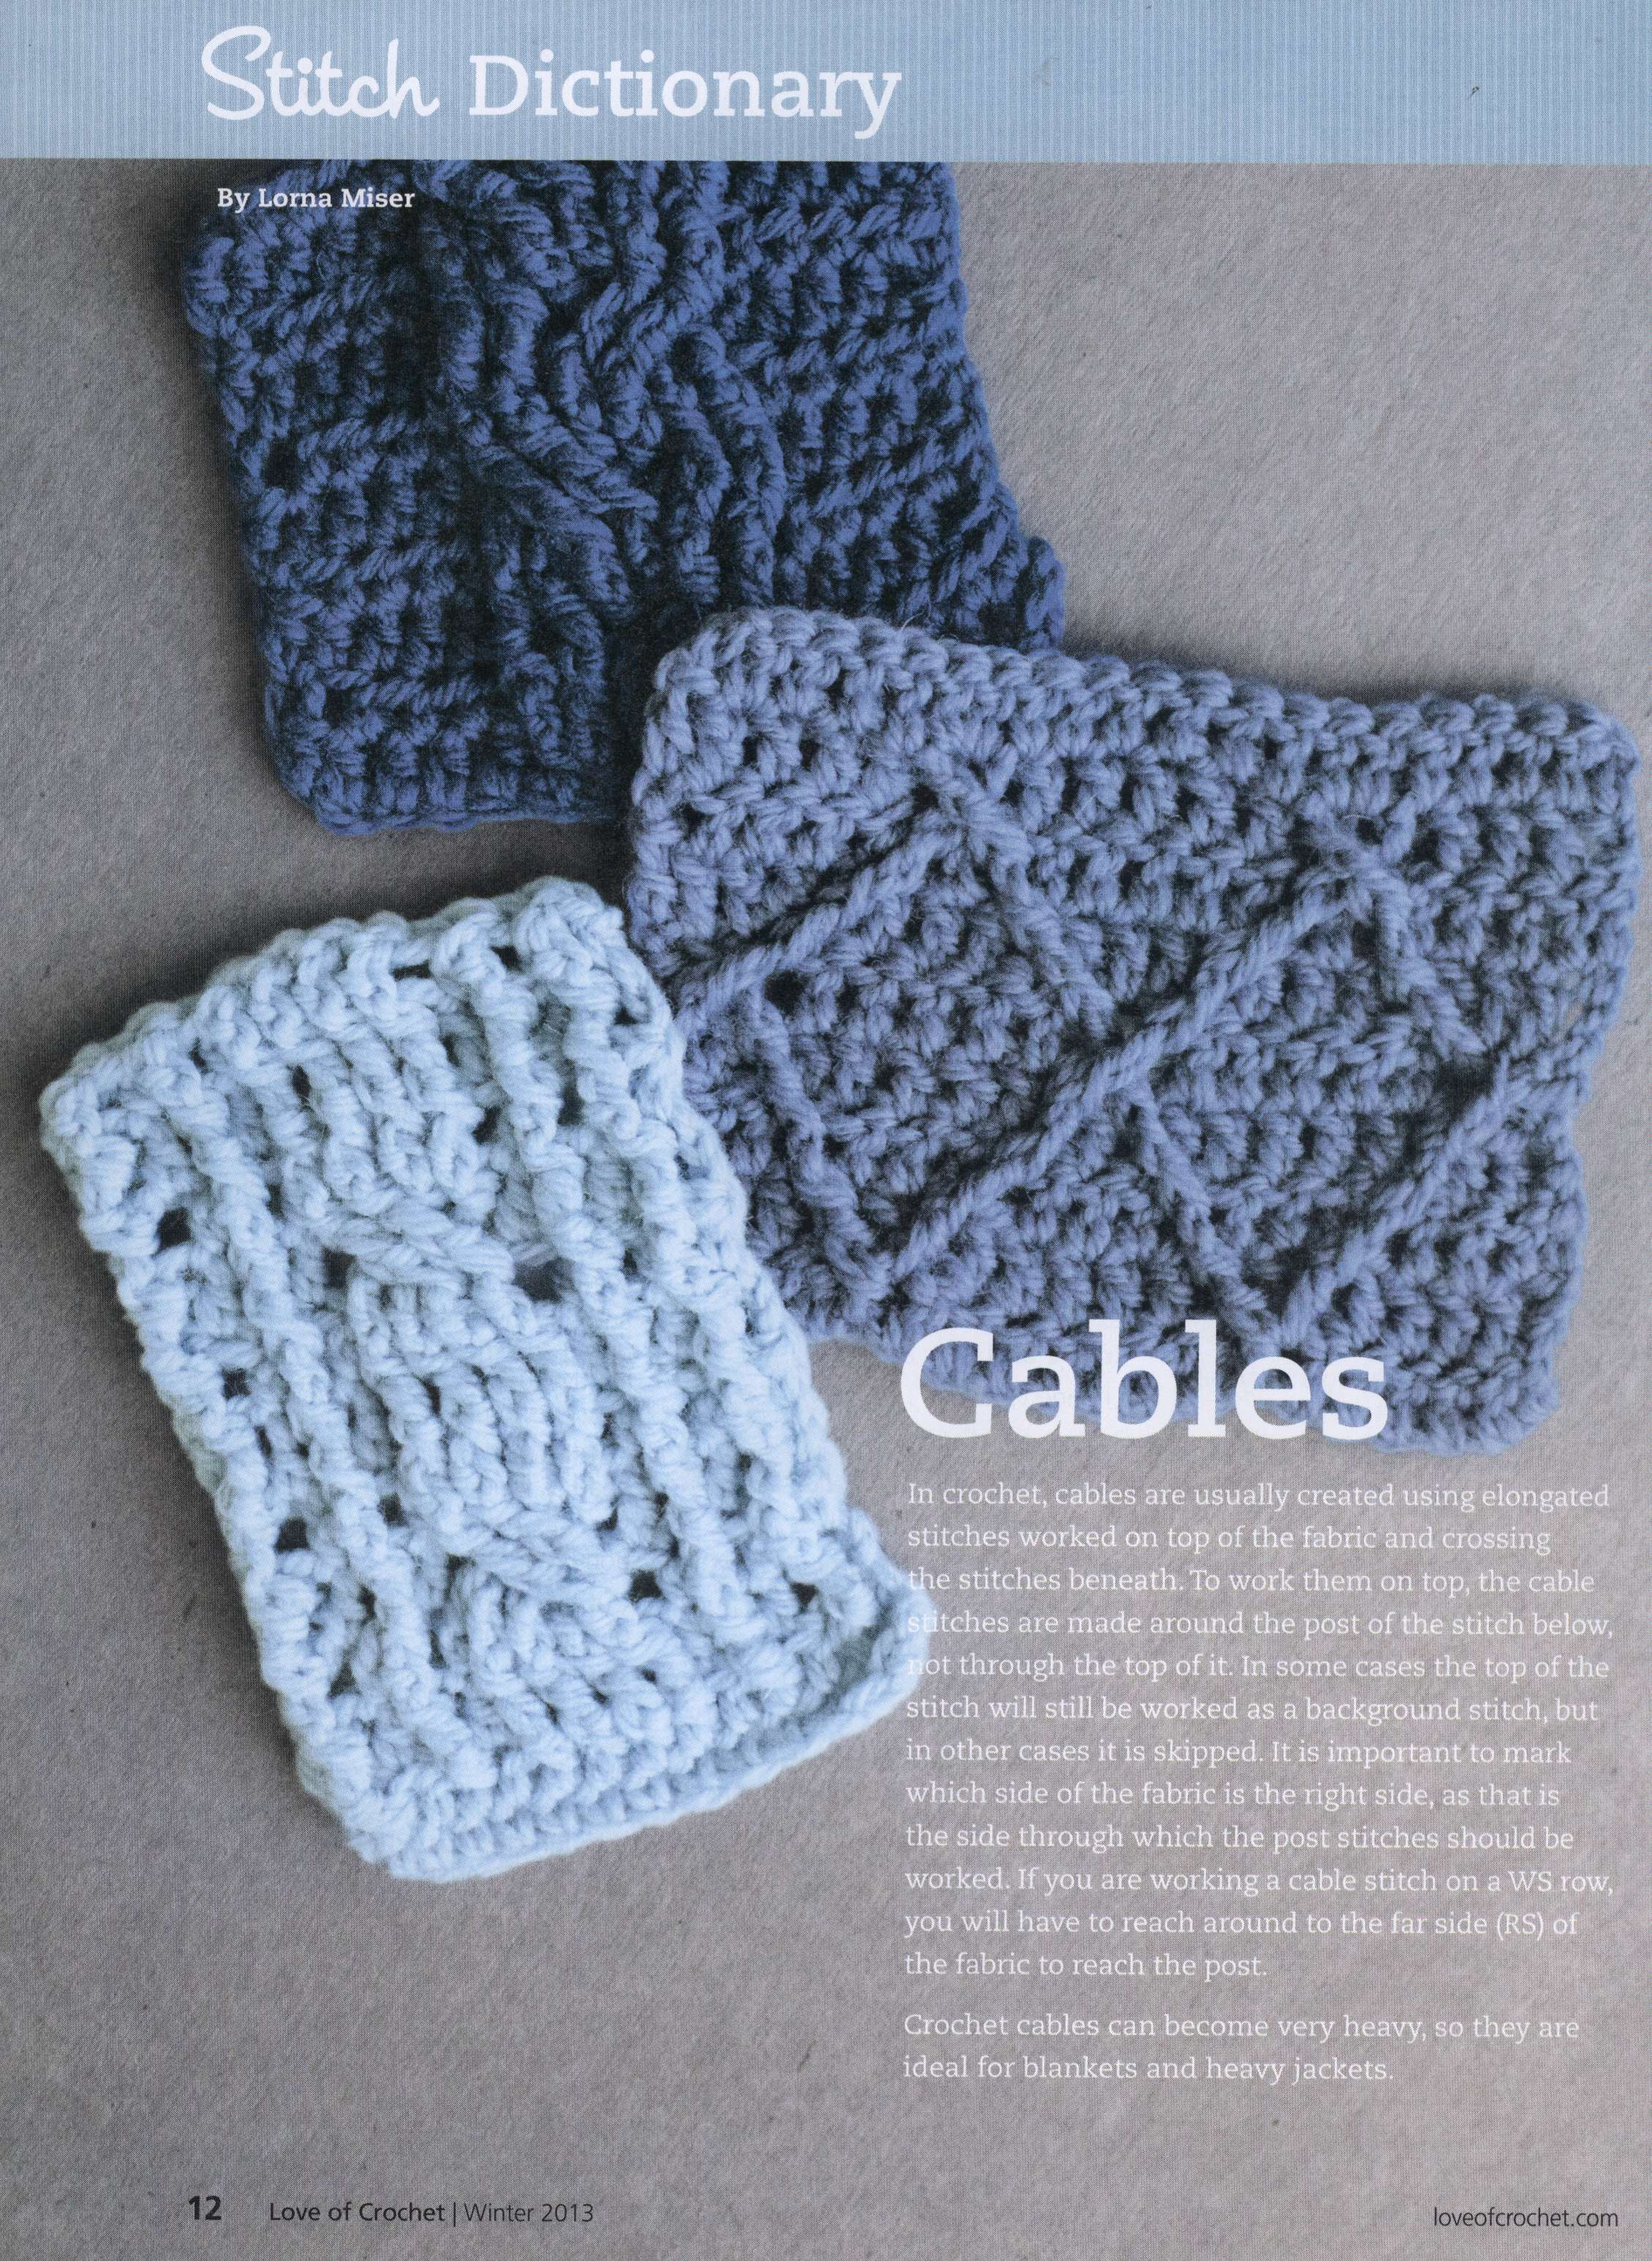 Crochet Stitches Cable : Crochet cable stitches, wide cable stitch, long cable stitch and ...